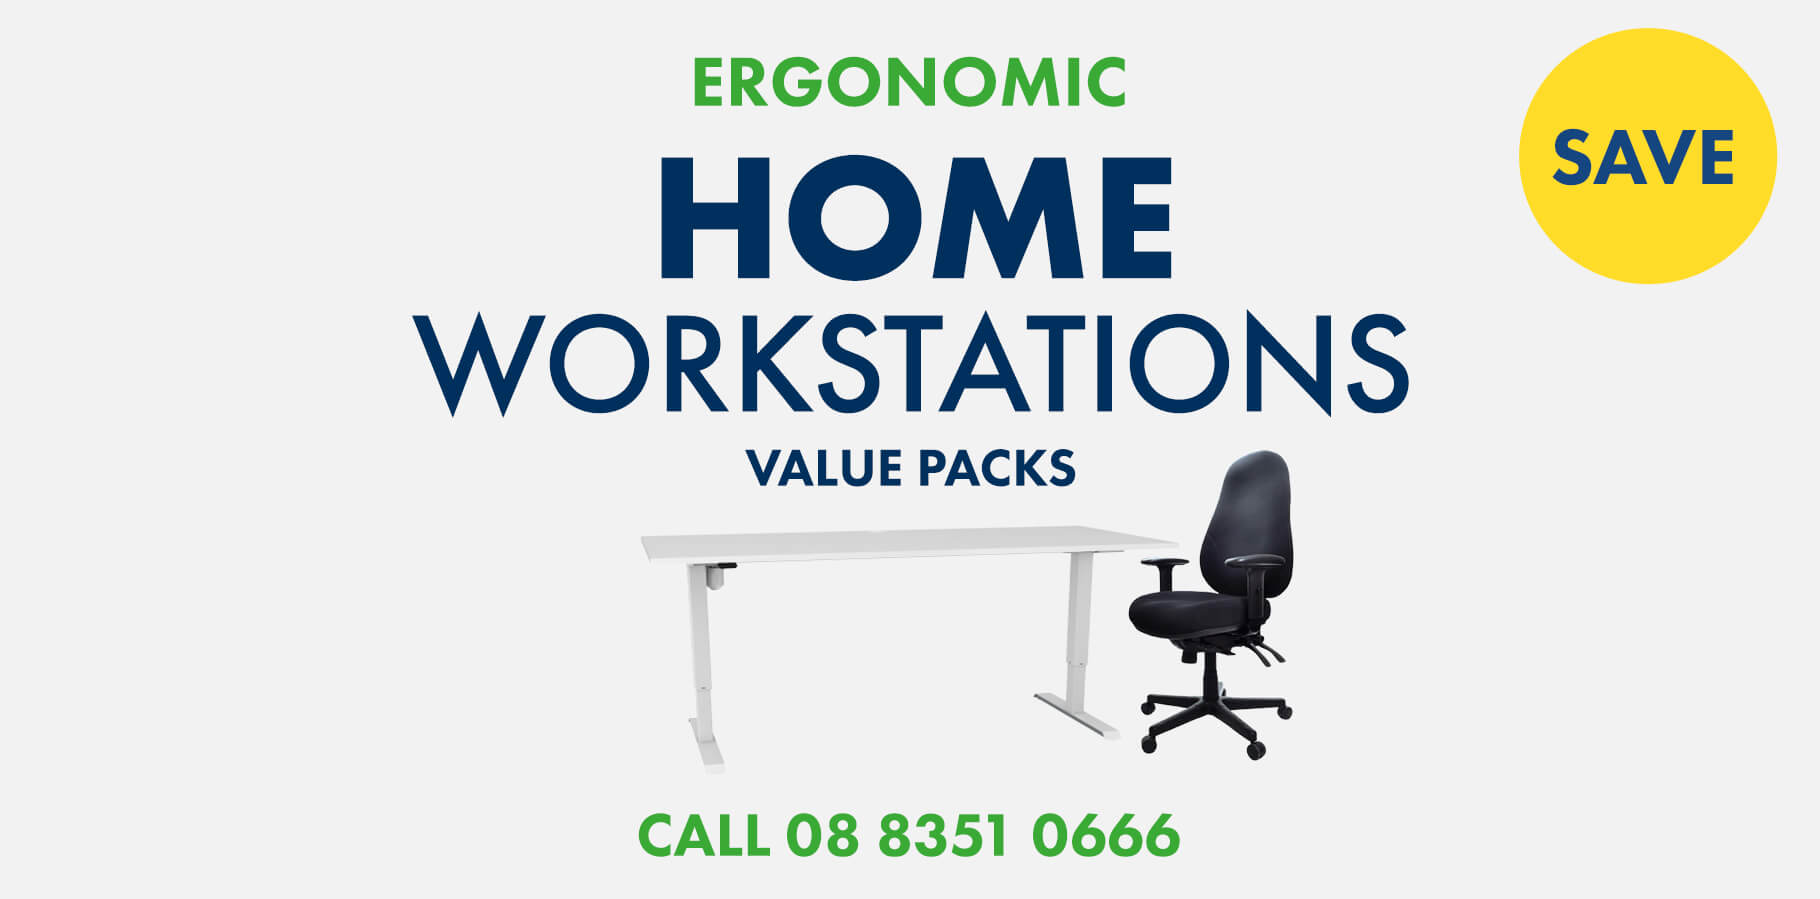 Home Workstations